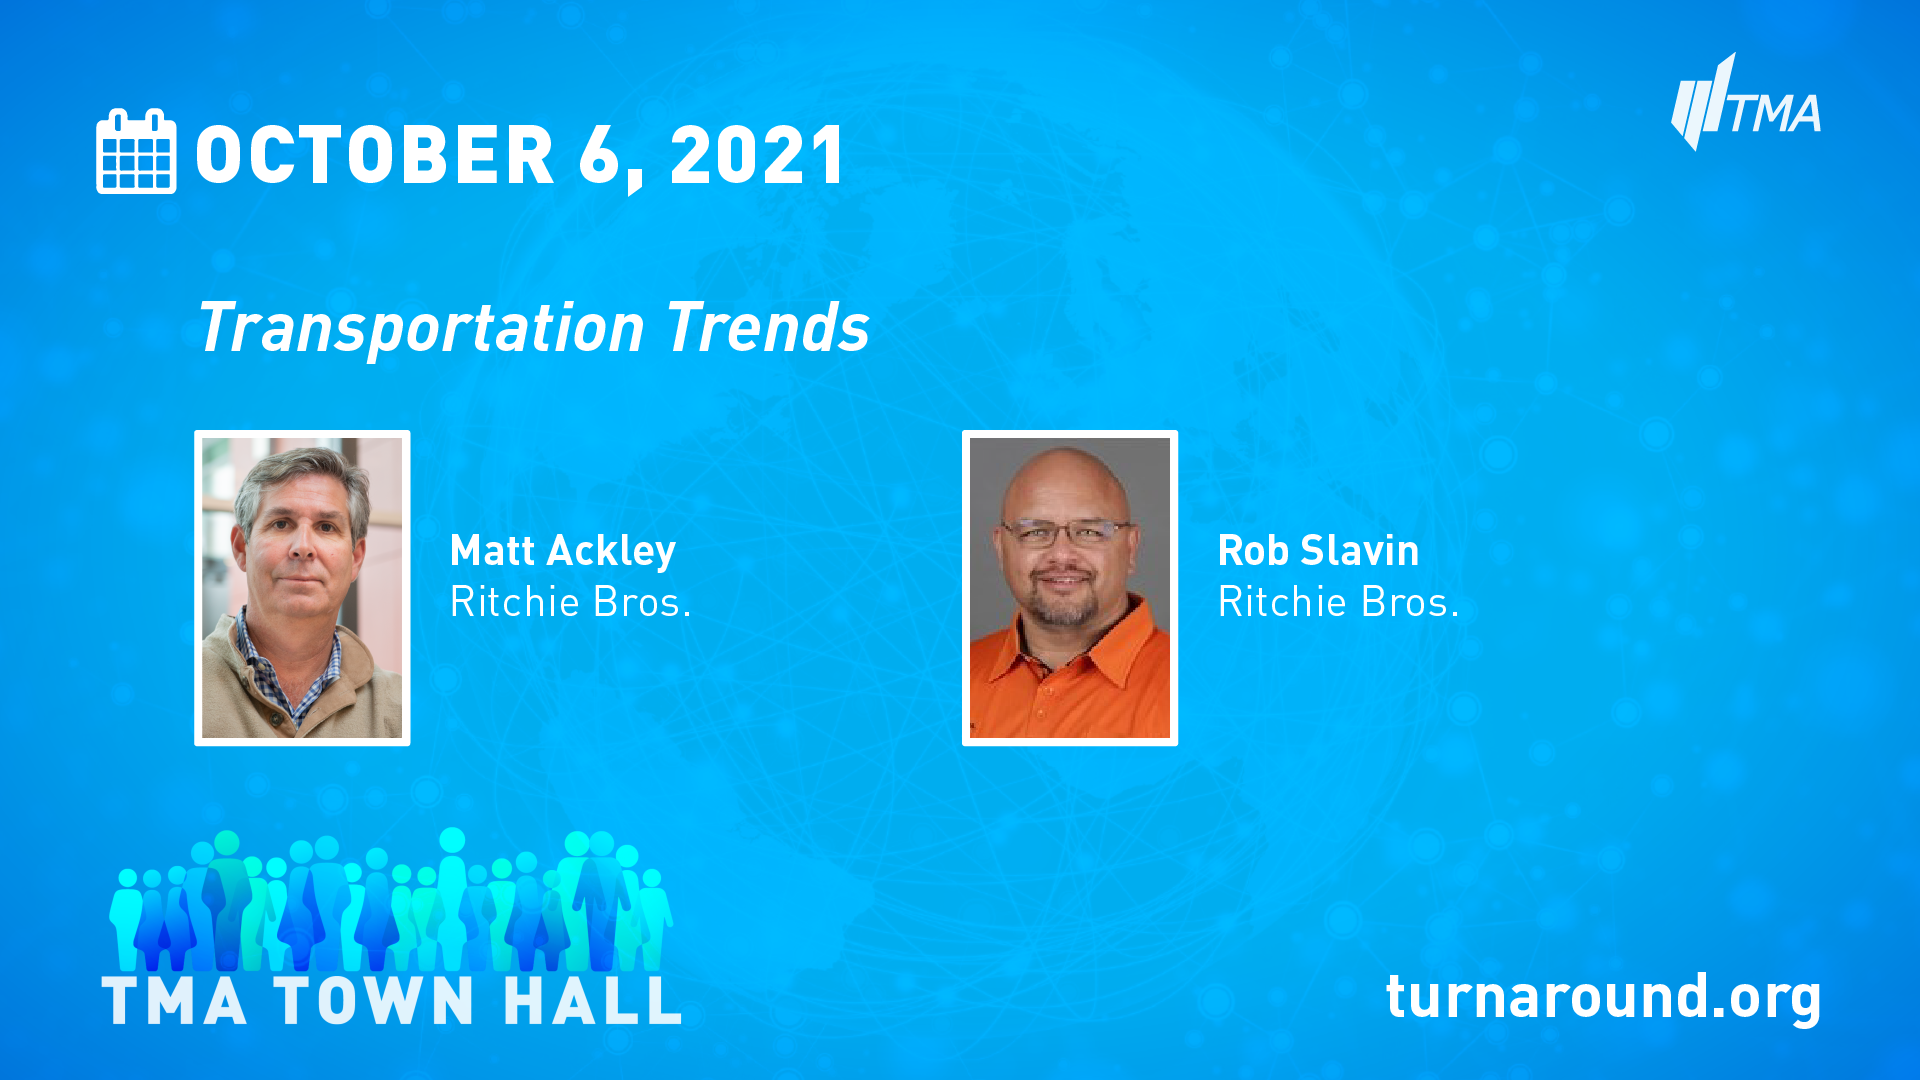 TMA Town Hall for October 6, 2021